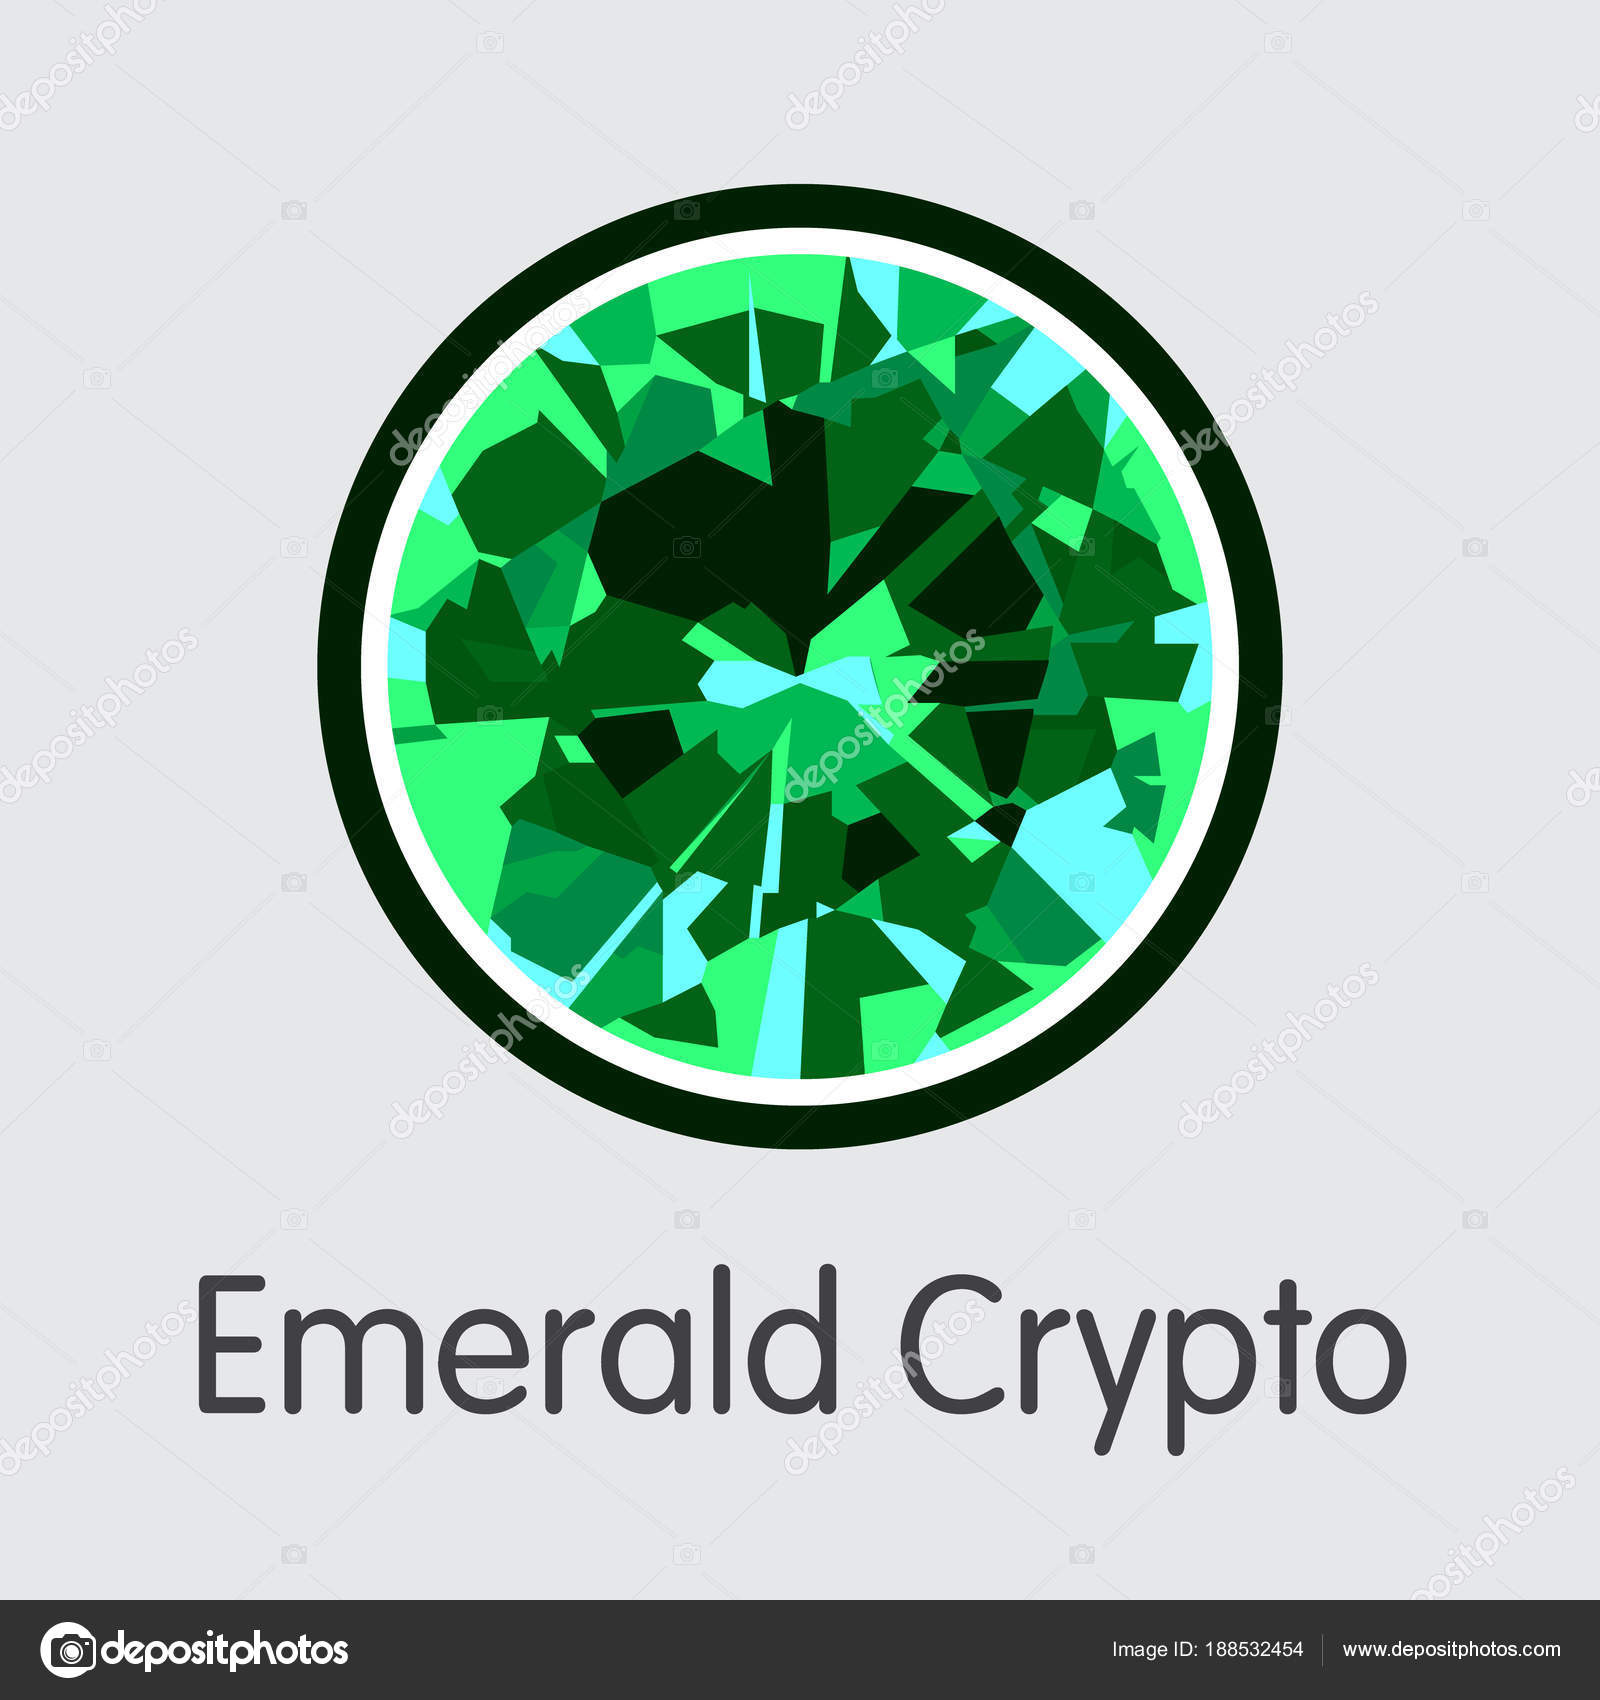 Emerald Crypto Crypto Currency Coin Symbol Stock Vector